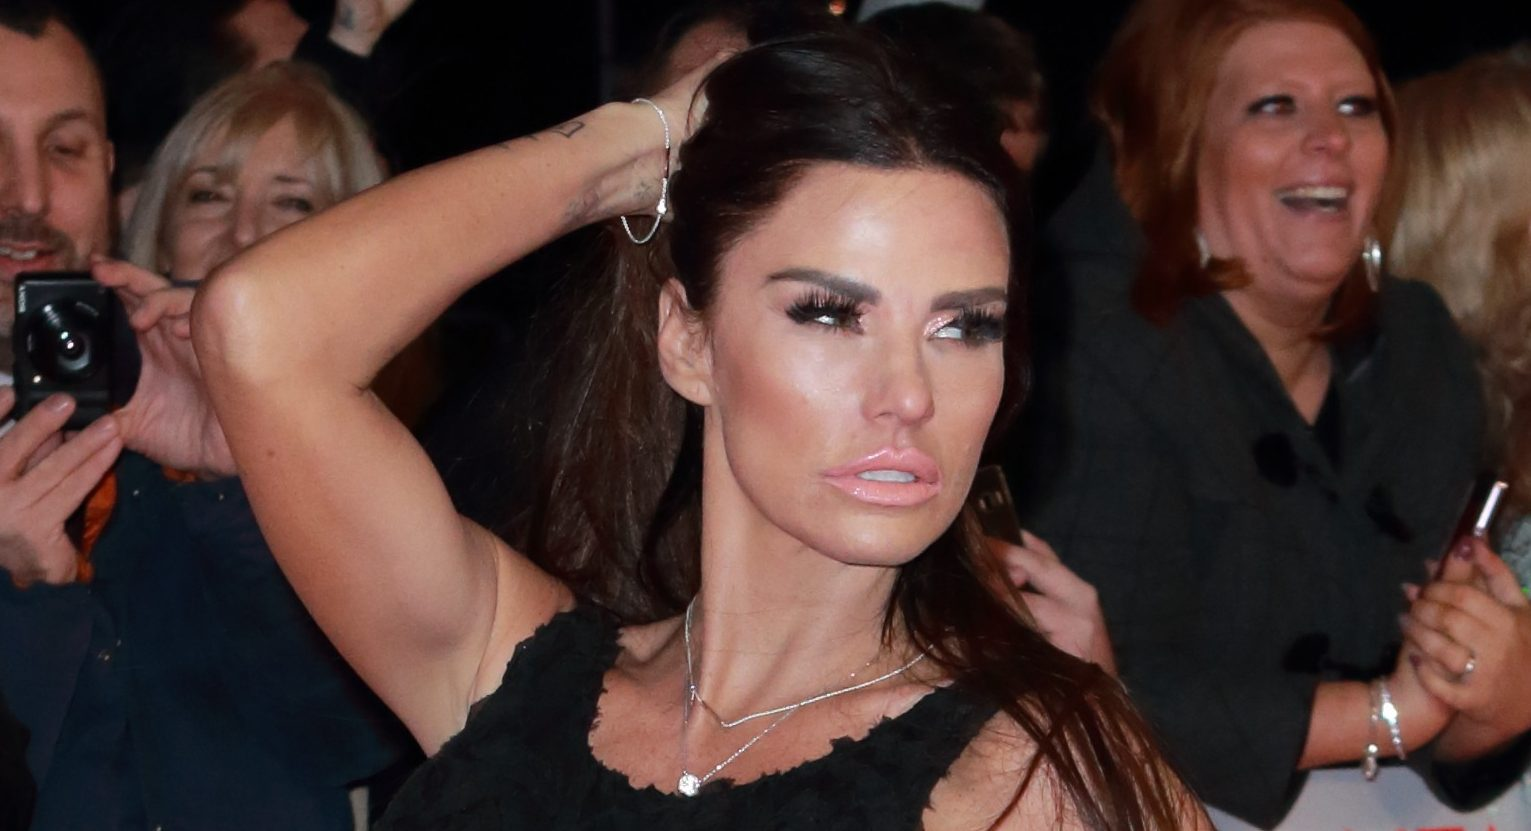 Katie Price leaves hotel guests 'furious' after 'screaming and singing till 5am'